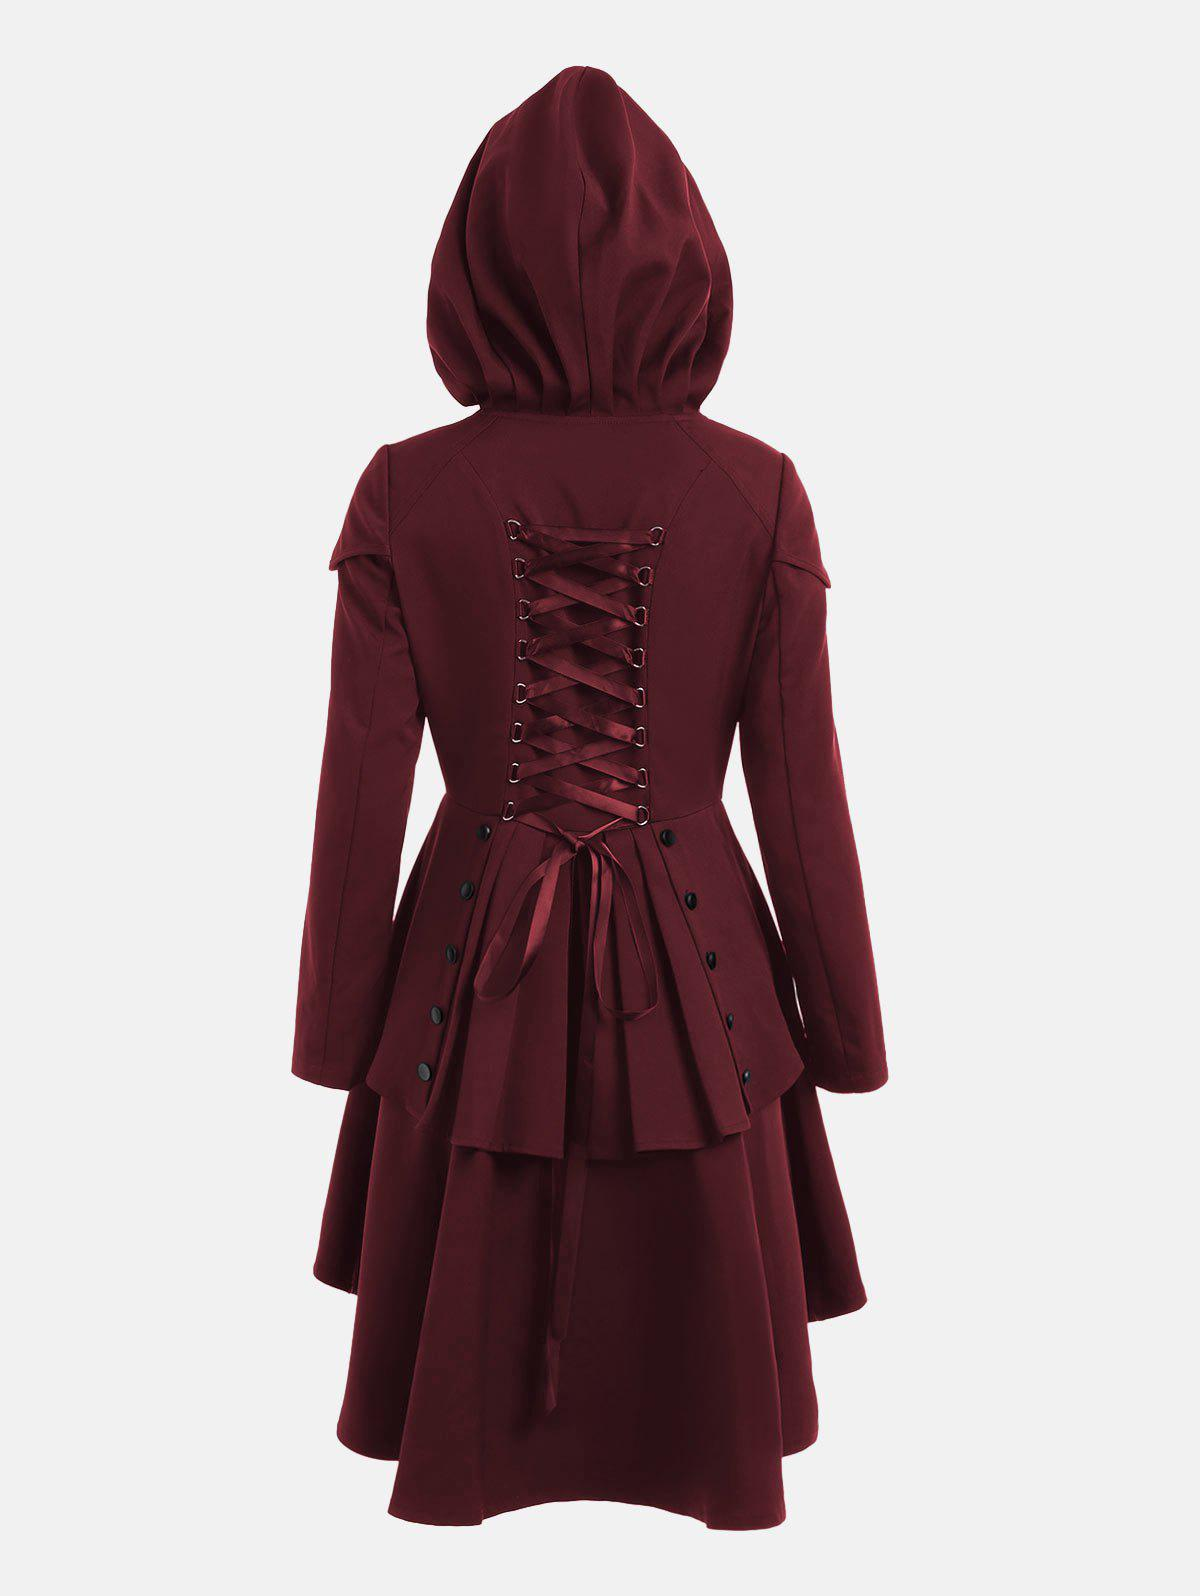 Lace Up Layered High Low Hooded CoatWOMEN<br><br>Size: L; Color: WINE RED; Clothes Type: Others; Material: Polyester; Type: High Waist; Shirt Length: Long; Sleeve Length: Full; Collar: Hooded; Closure Type: Single Breasted; Pattern Type: Solid; Embellishment: Criss-Cross; Style: Gothic; Season: Fall,Spring; With Belt: No; Weight: 0.6600kg; Package Contents: 1 x Coat;